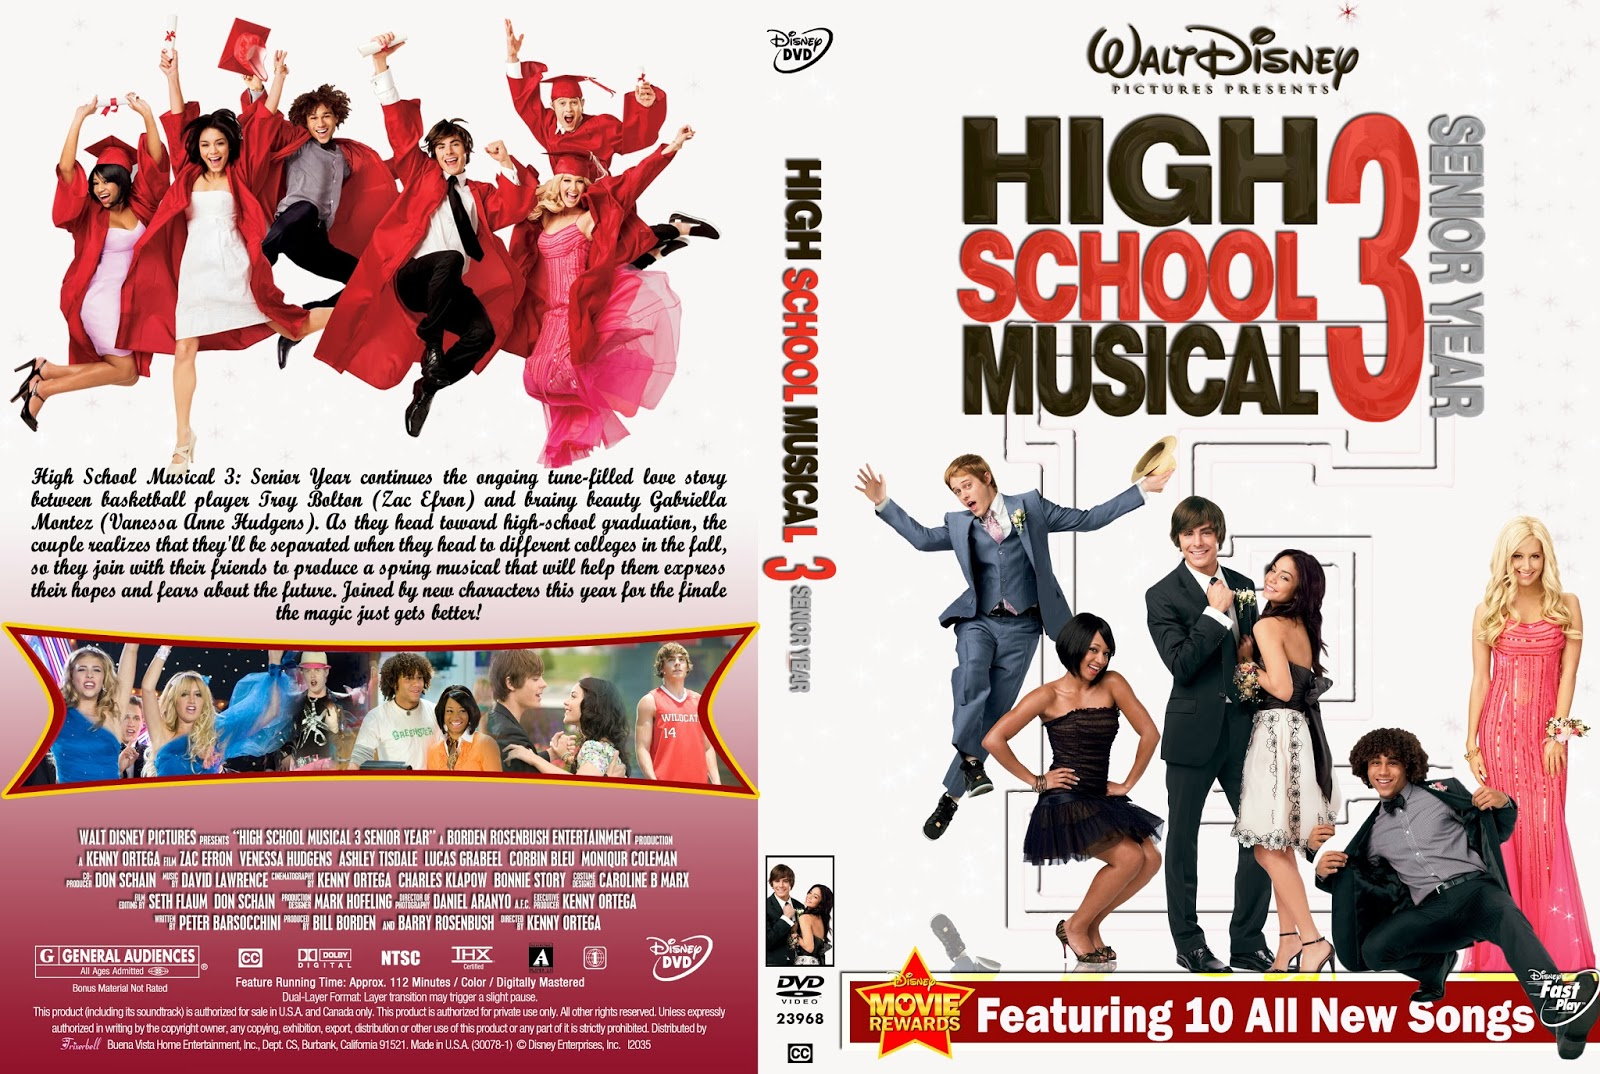 High School Musical 3 DVD COVER